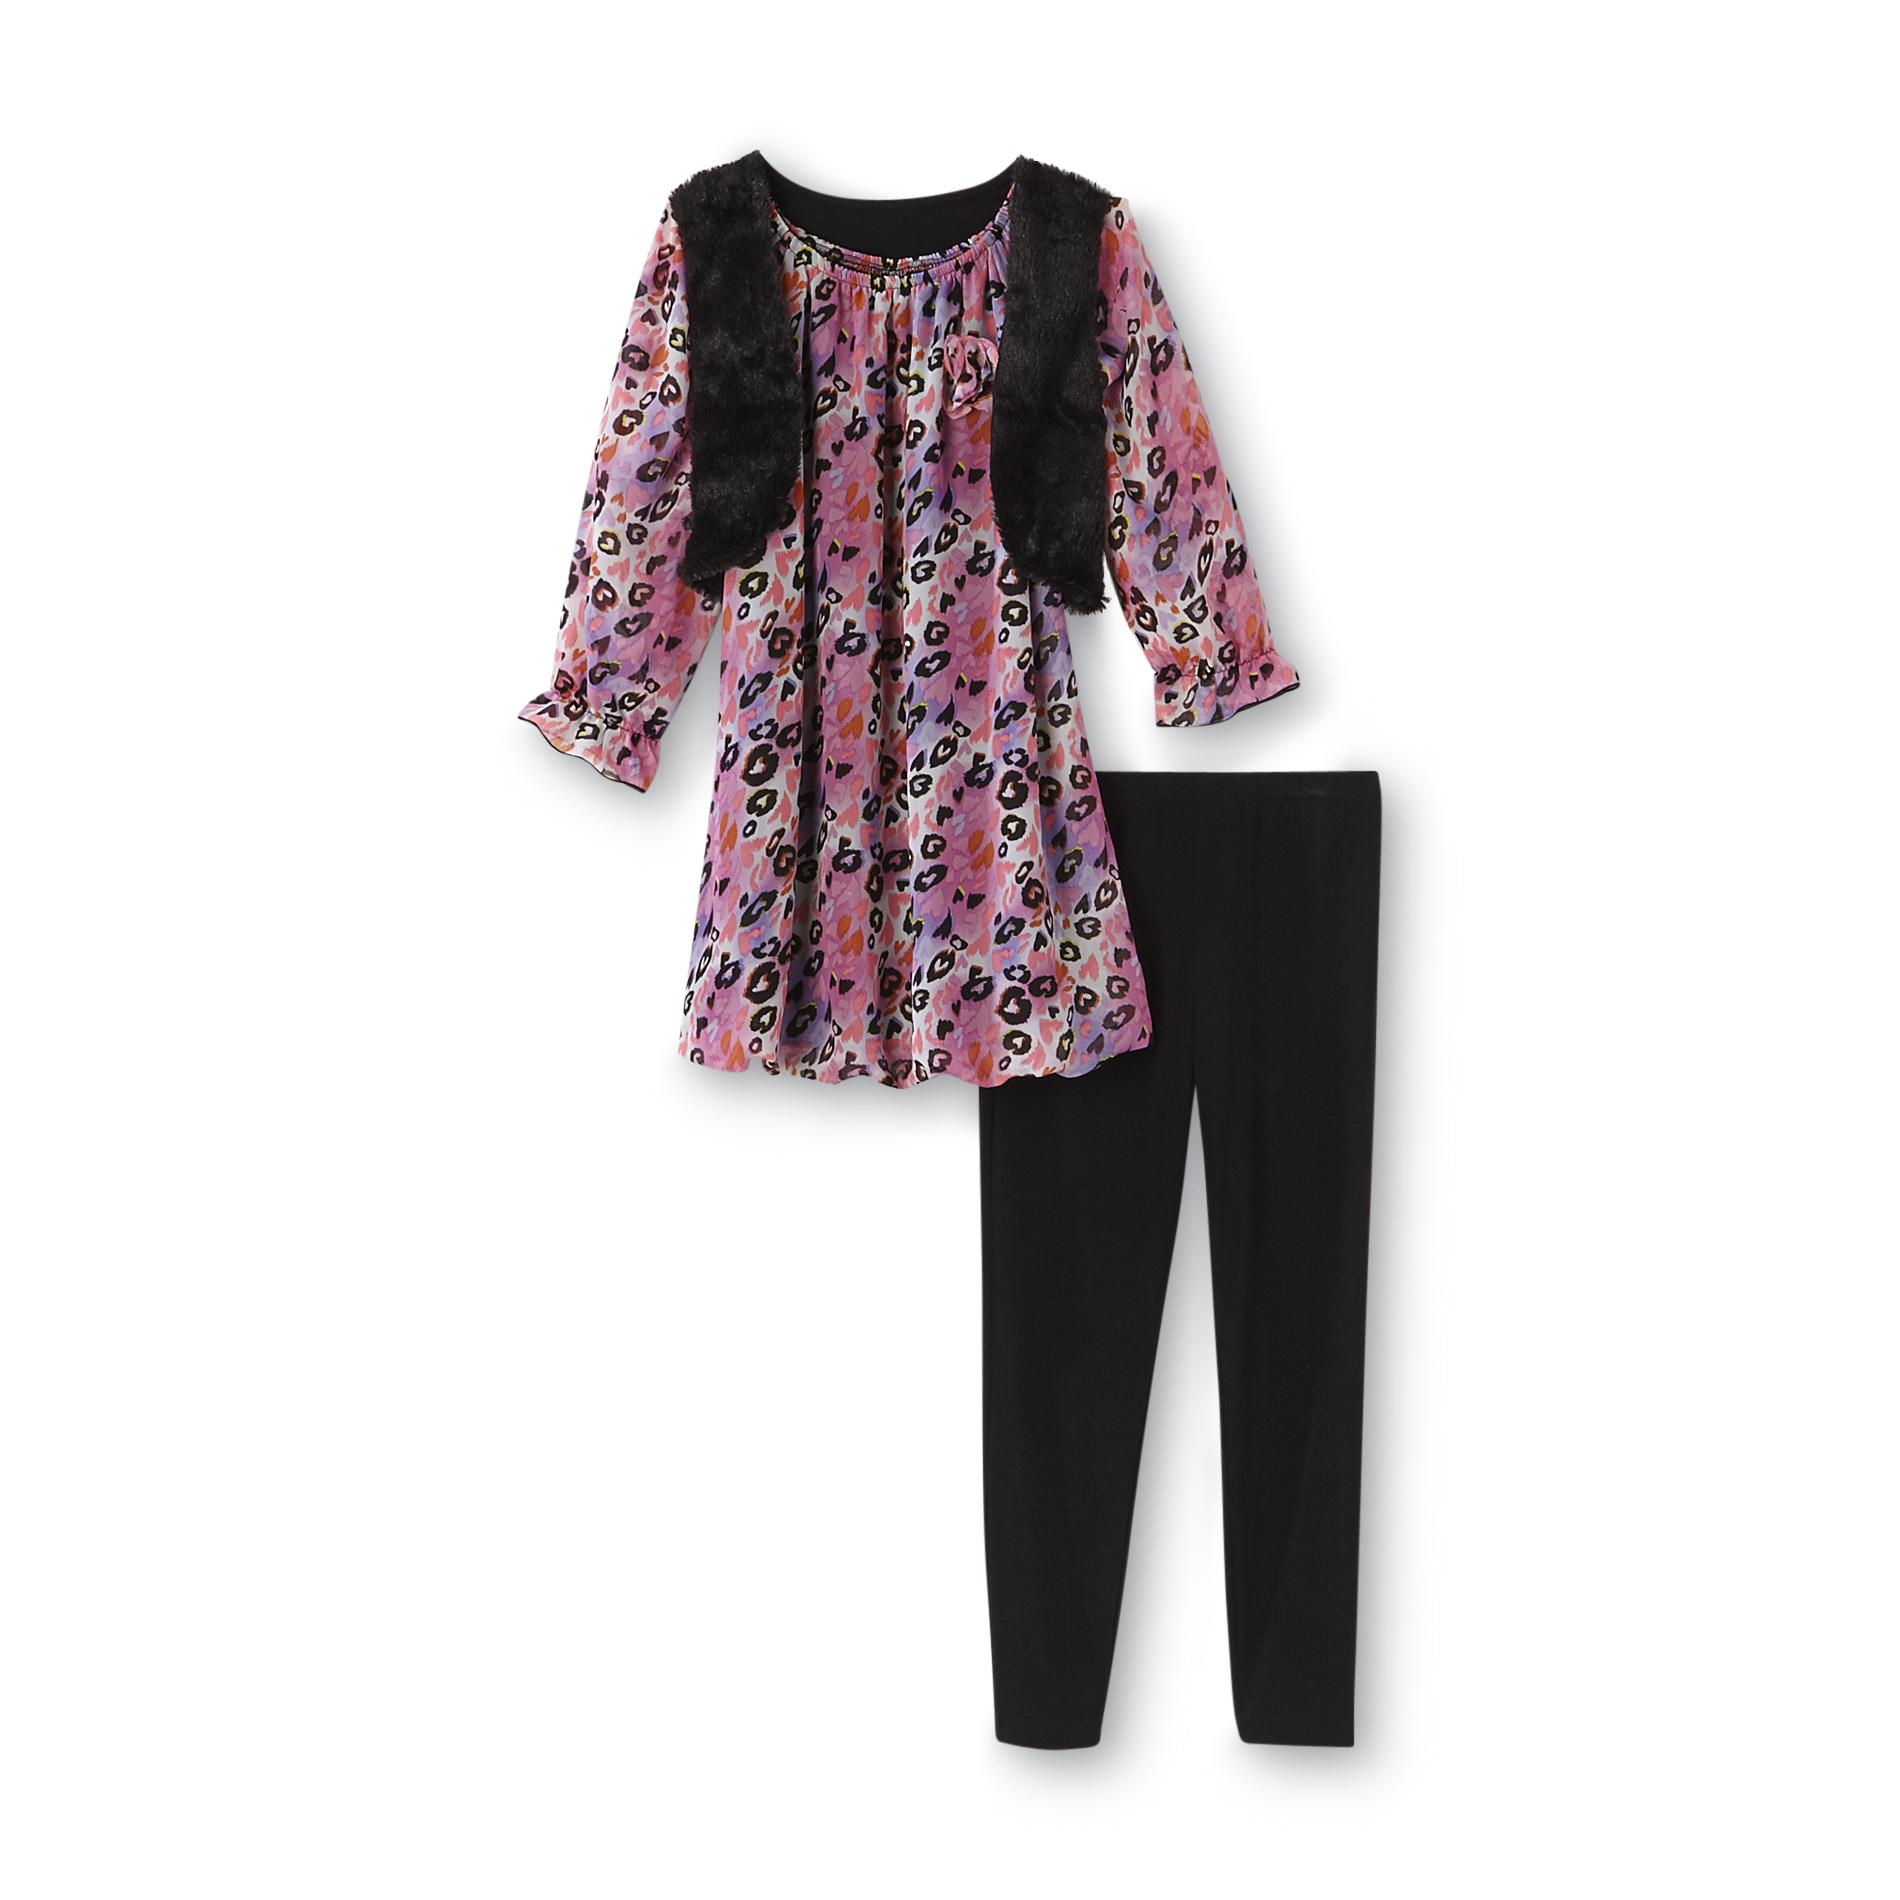 Piper Girl's Tunic Top, Leggings & Faux